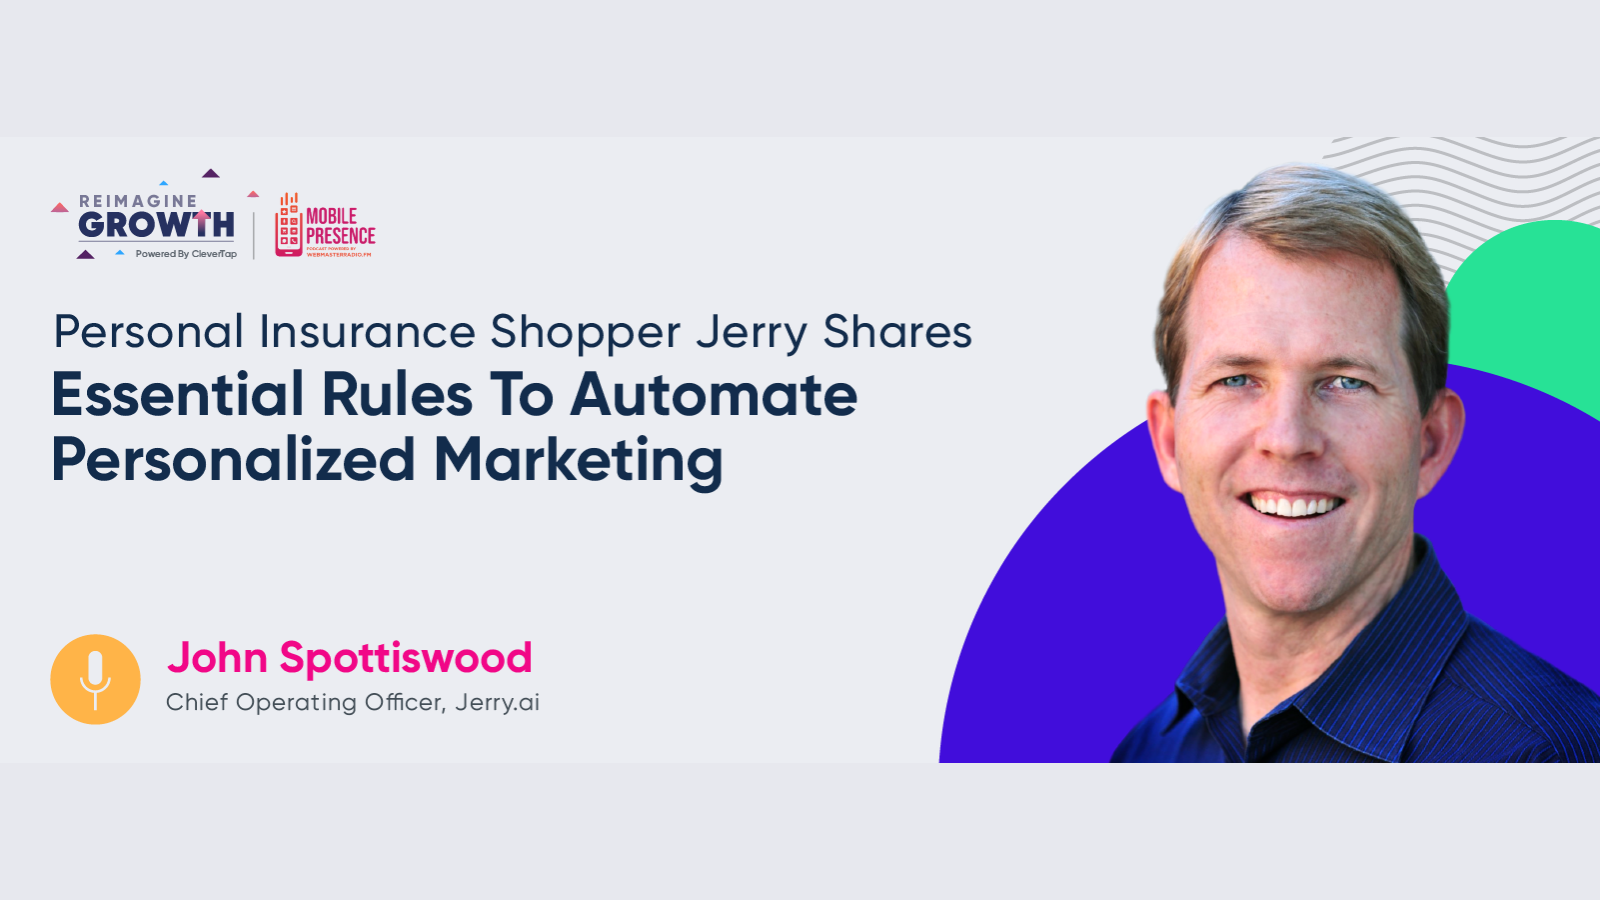 Personal Insurance Shopper Jerry Shares Essential Rules To Automate Personalized Marketing